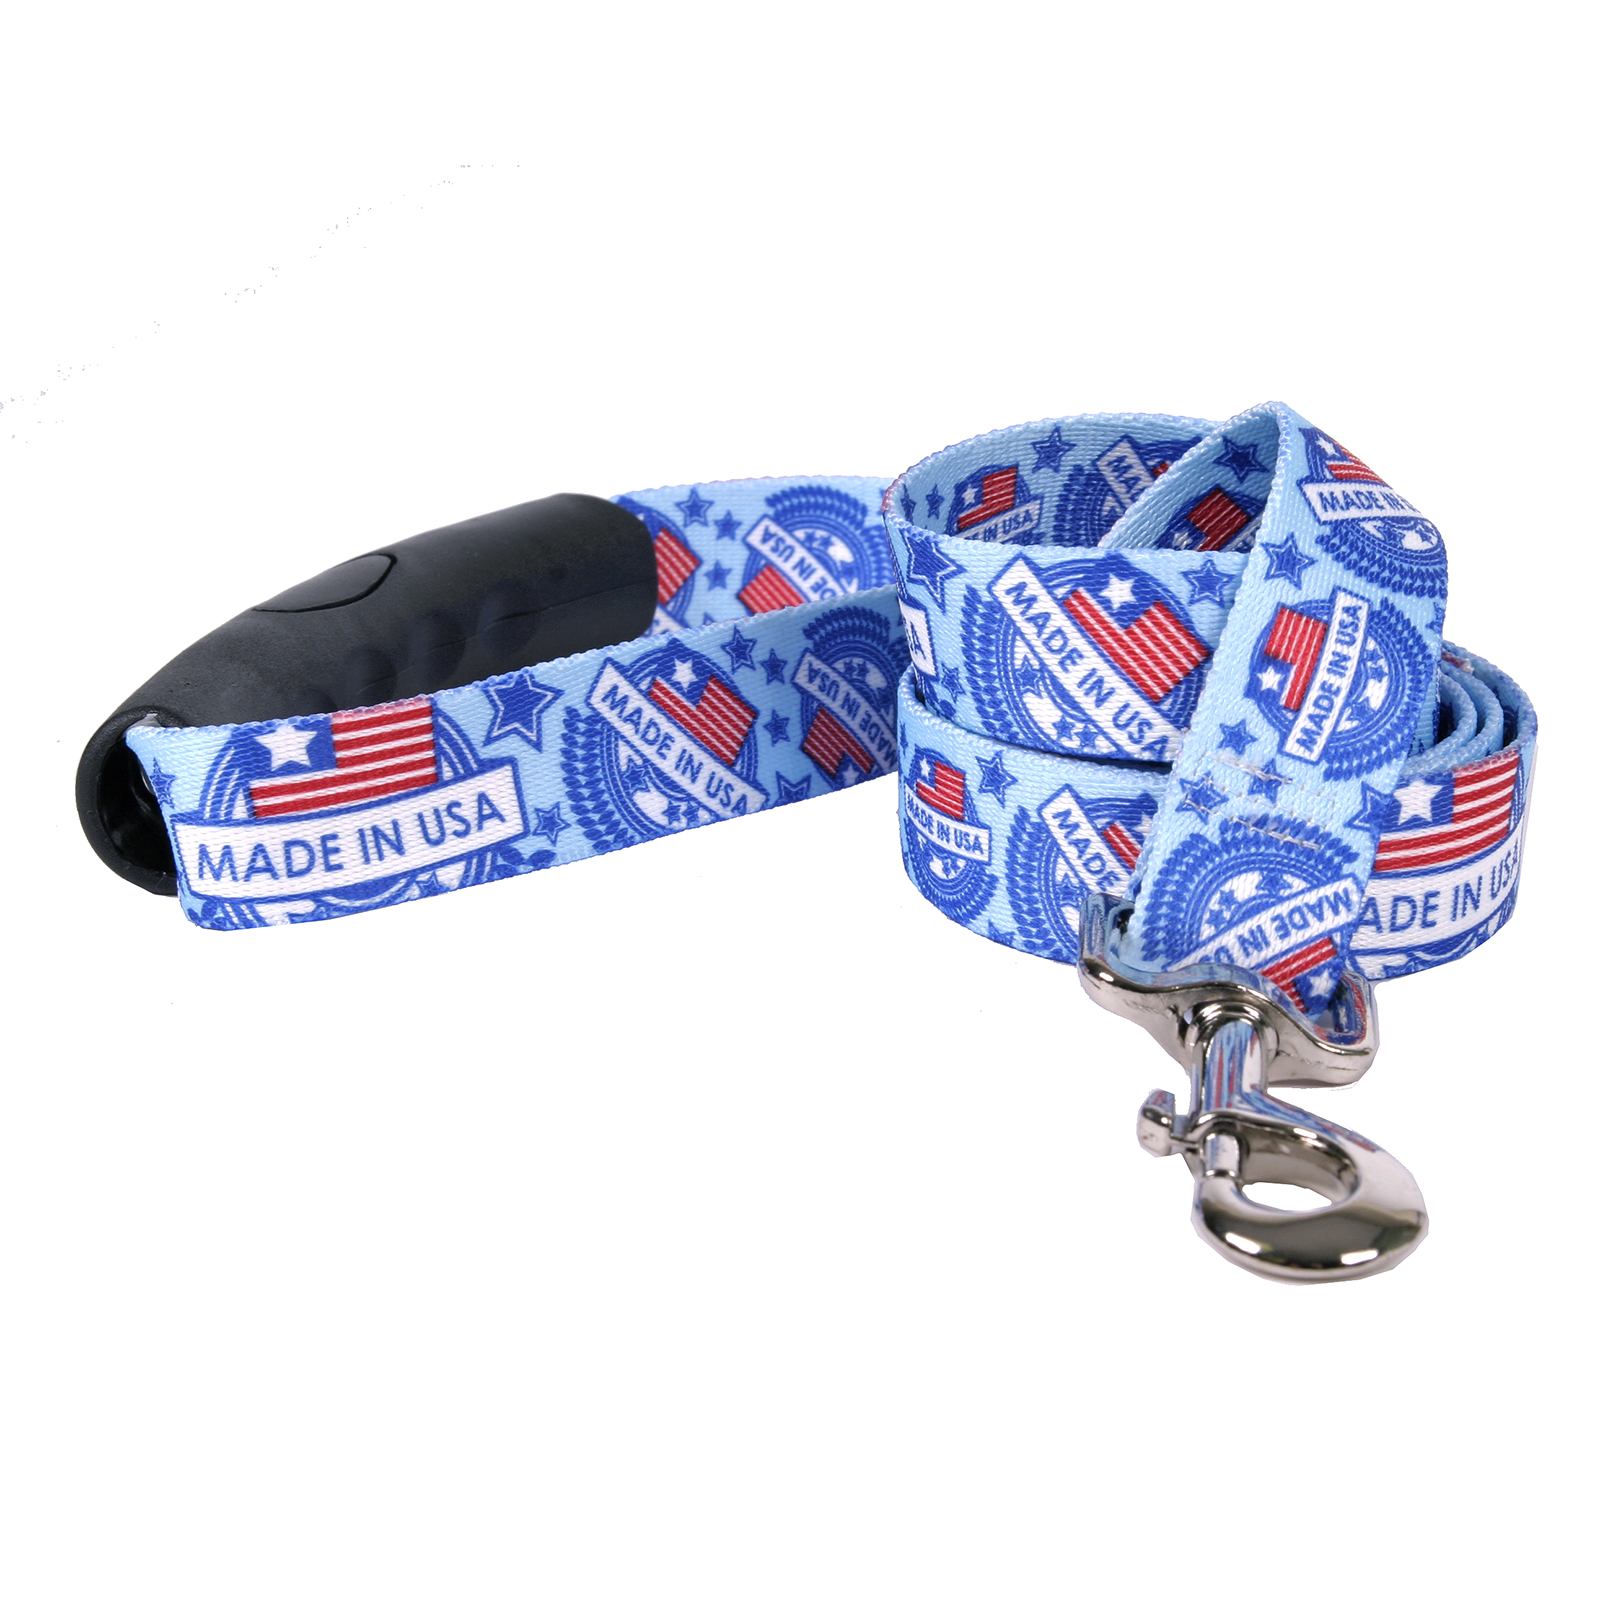 Made in USA Blue EZ-Lead